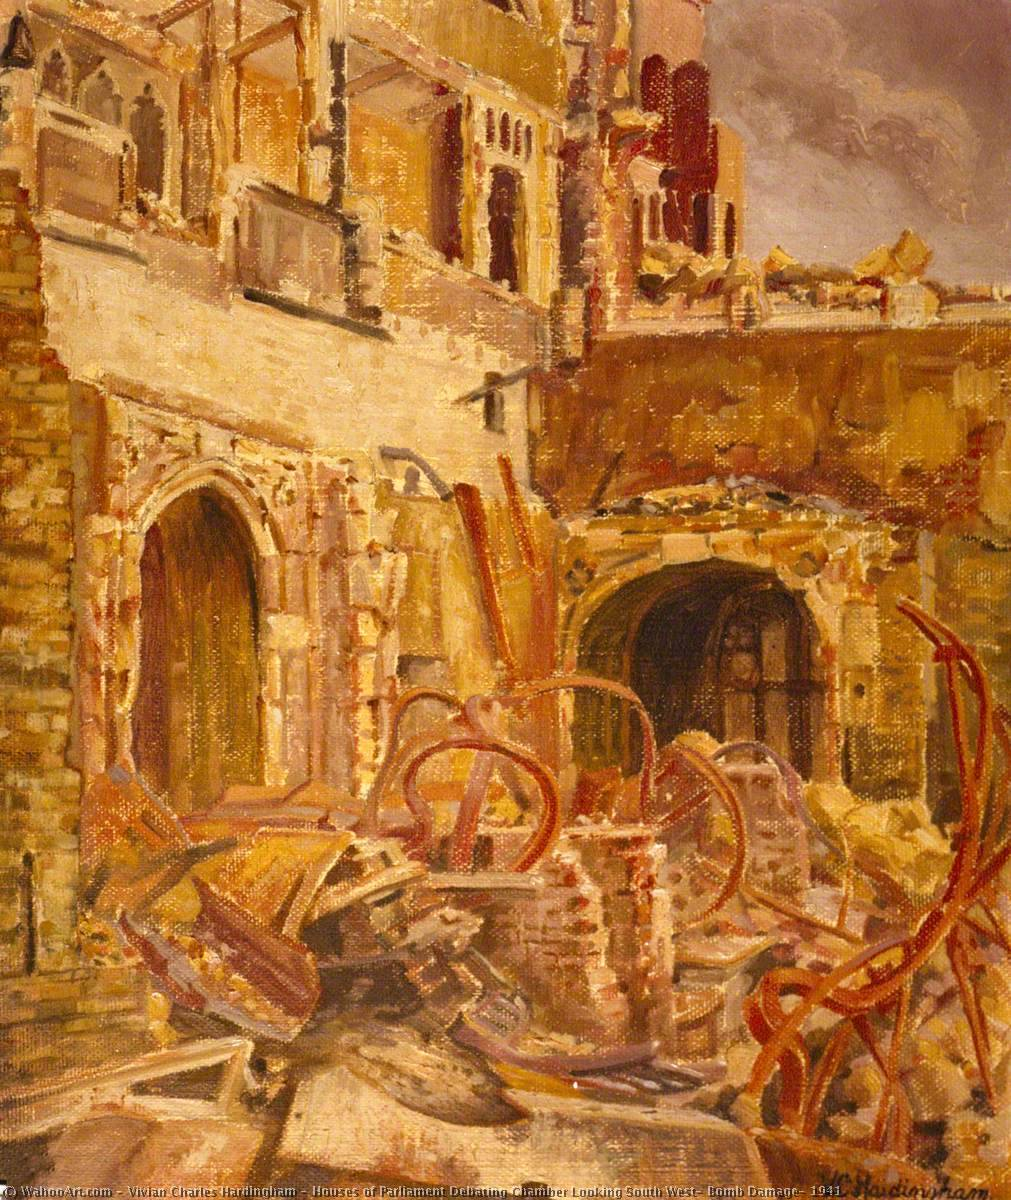 Houses of Parliament Debating Chamber Looking South West, Bomb Damage, 1941, 1941 by Vivian Charles Hardingham | Art Reproduction | WahooArt.com